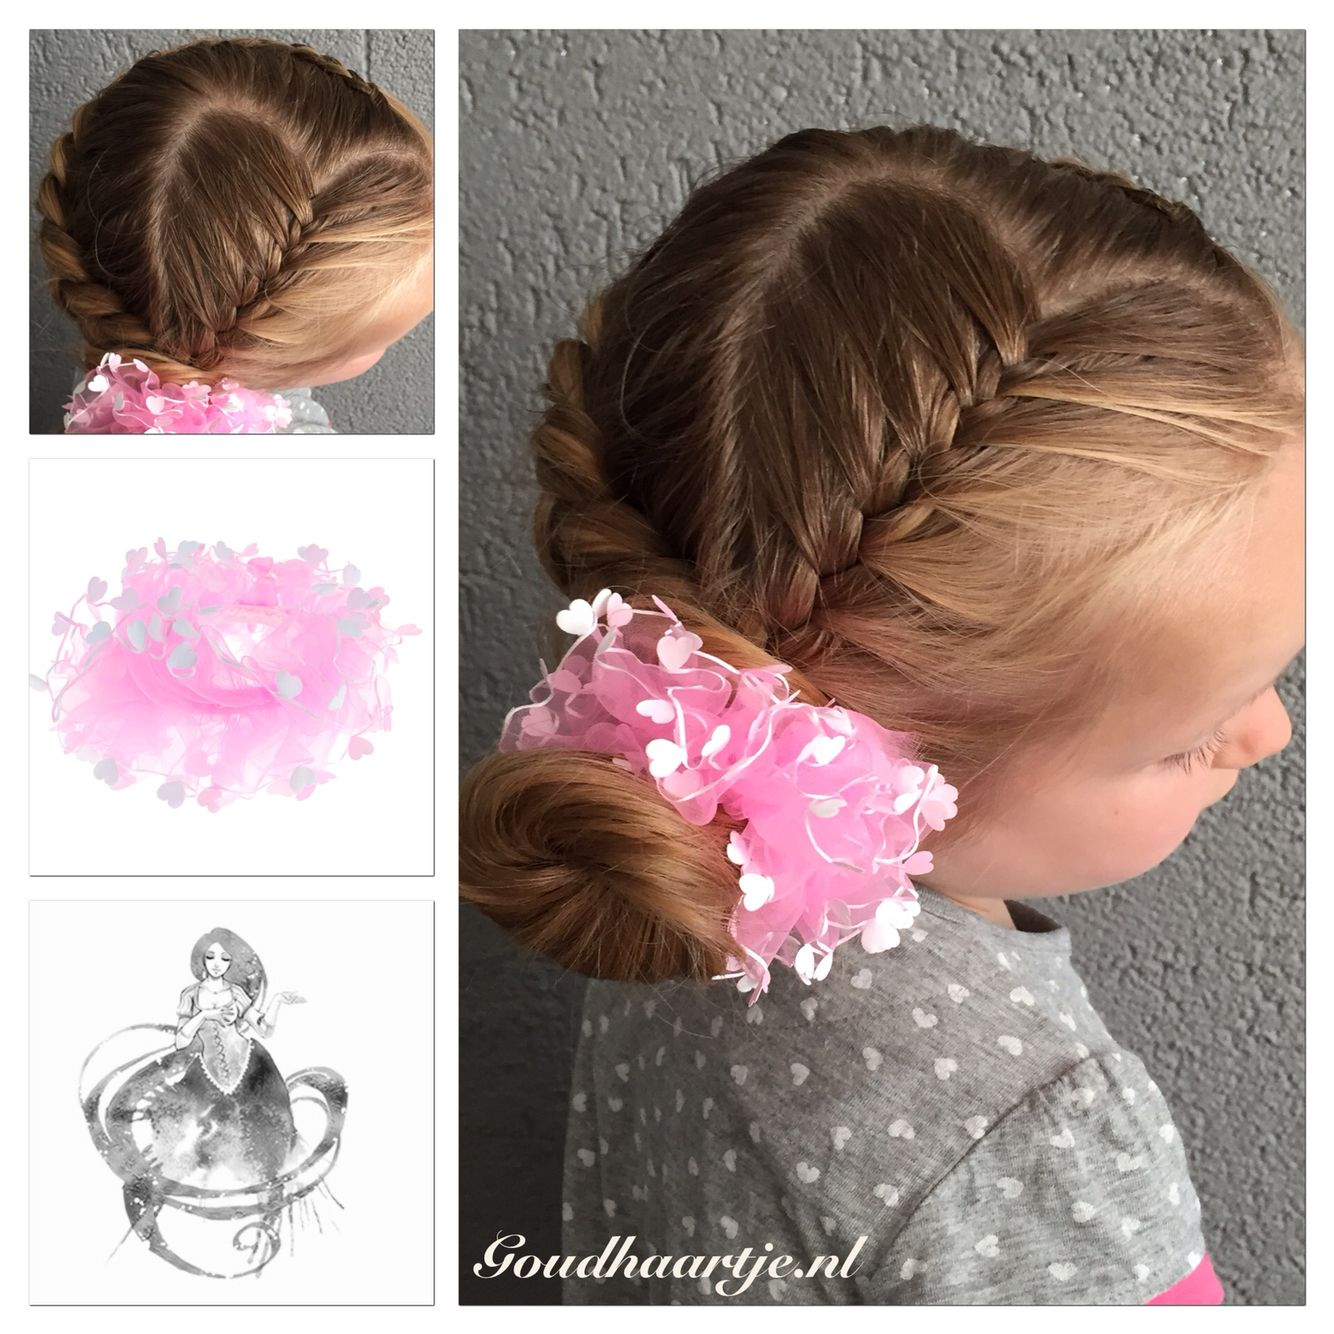 Heart shape hairstyle with hair elastic from Goudhaartje.nl #braid #hairstyle #hairaccesories #hairelastics #heart #vlecht #haaraccessoires #haarelastiekjes #hart #goudhaartje #heartbraid